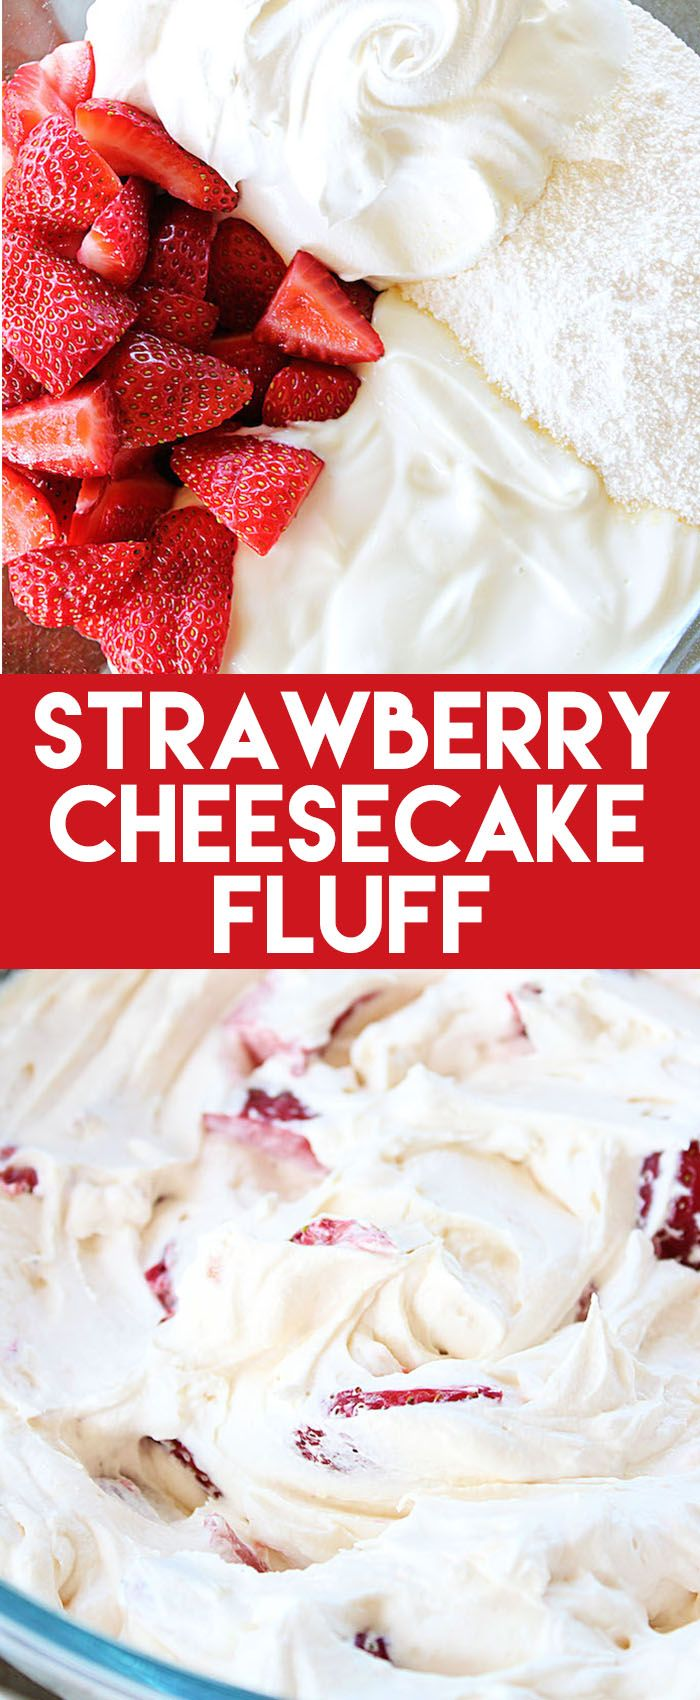 This Strawberry Cheesecake Fluff needs just four ingredients to make an awesome side or dessert recipe! It tastes so fresh and delicious.